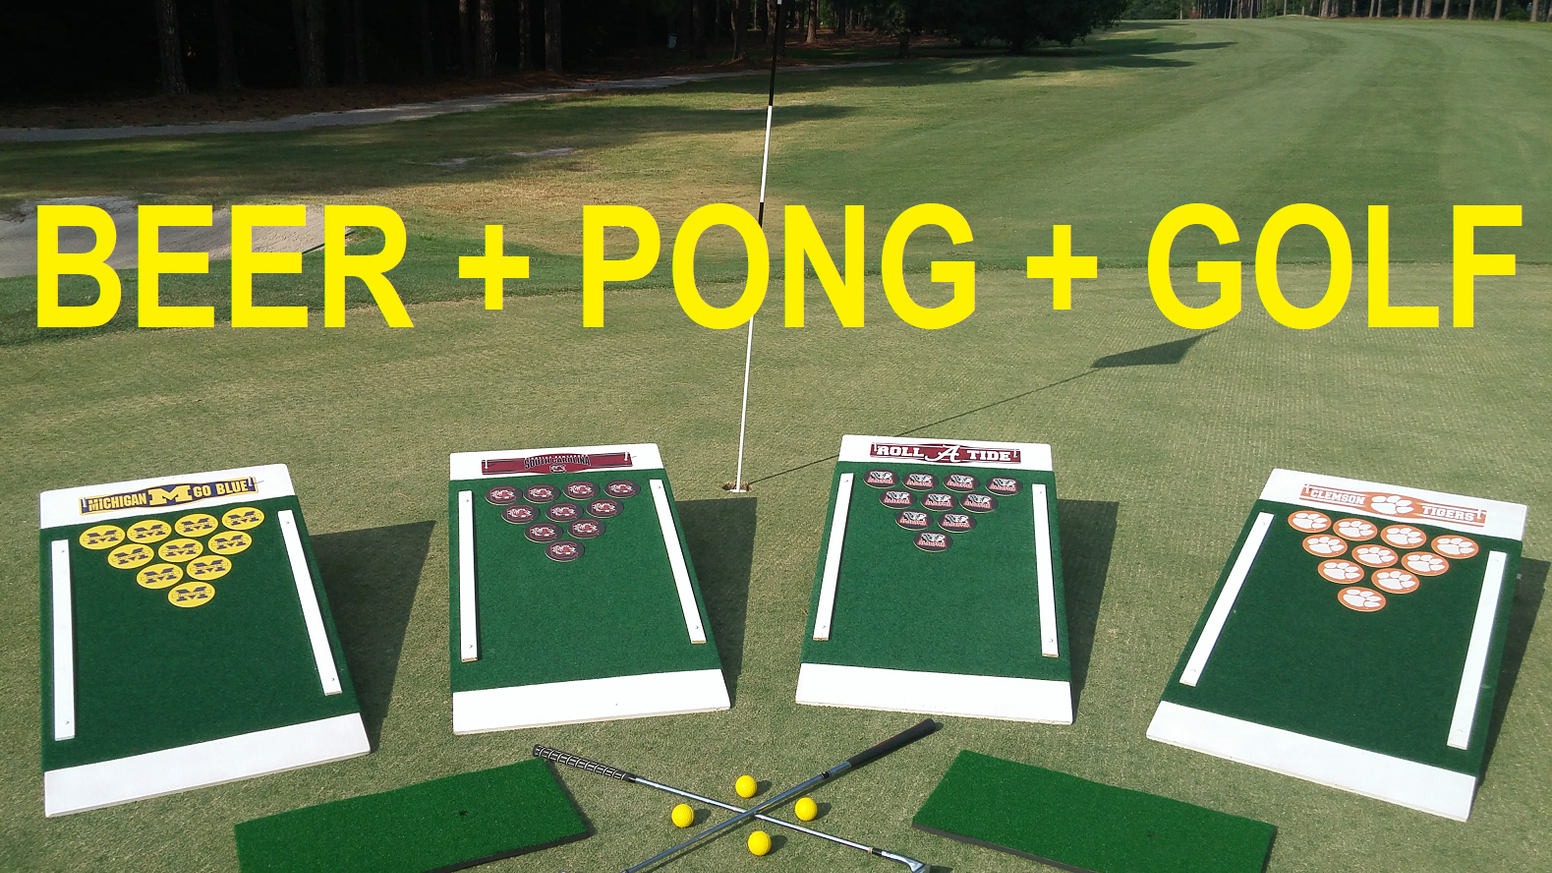 Not too late! Get Yours Today! Like us on Facebook for a cool coupon code too! Find us at www.beerpong.golf